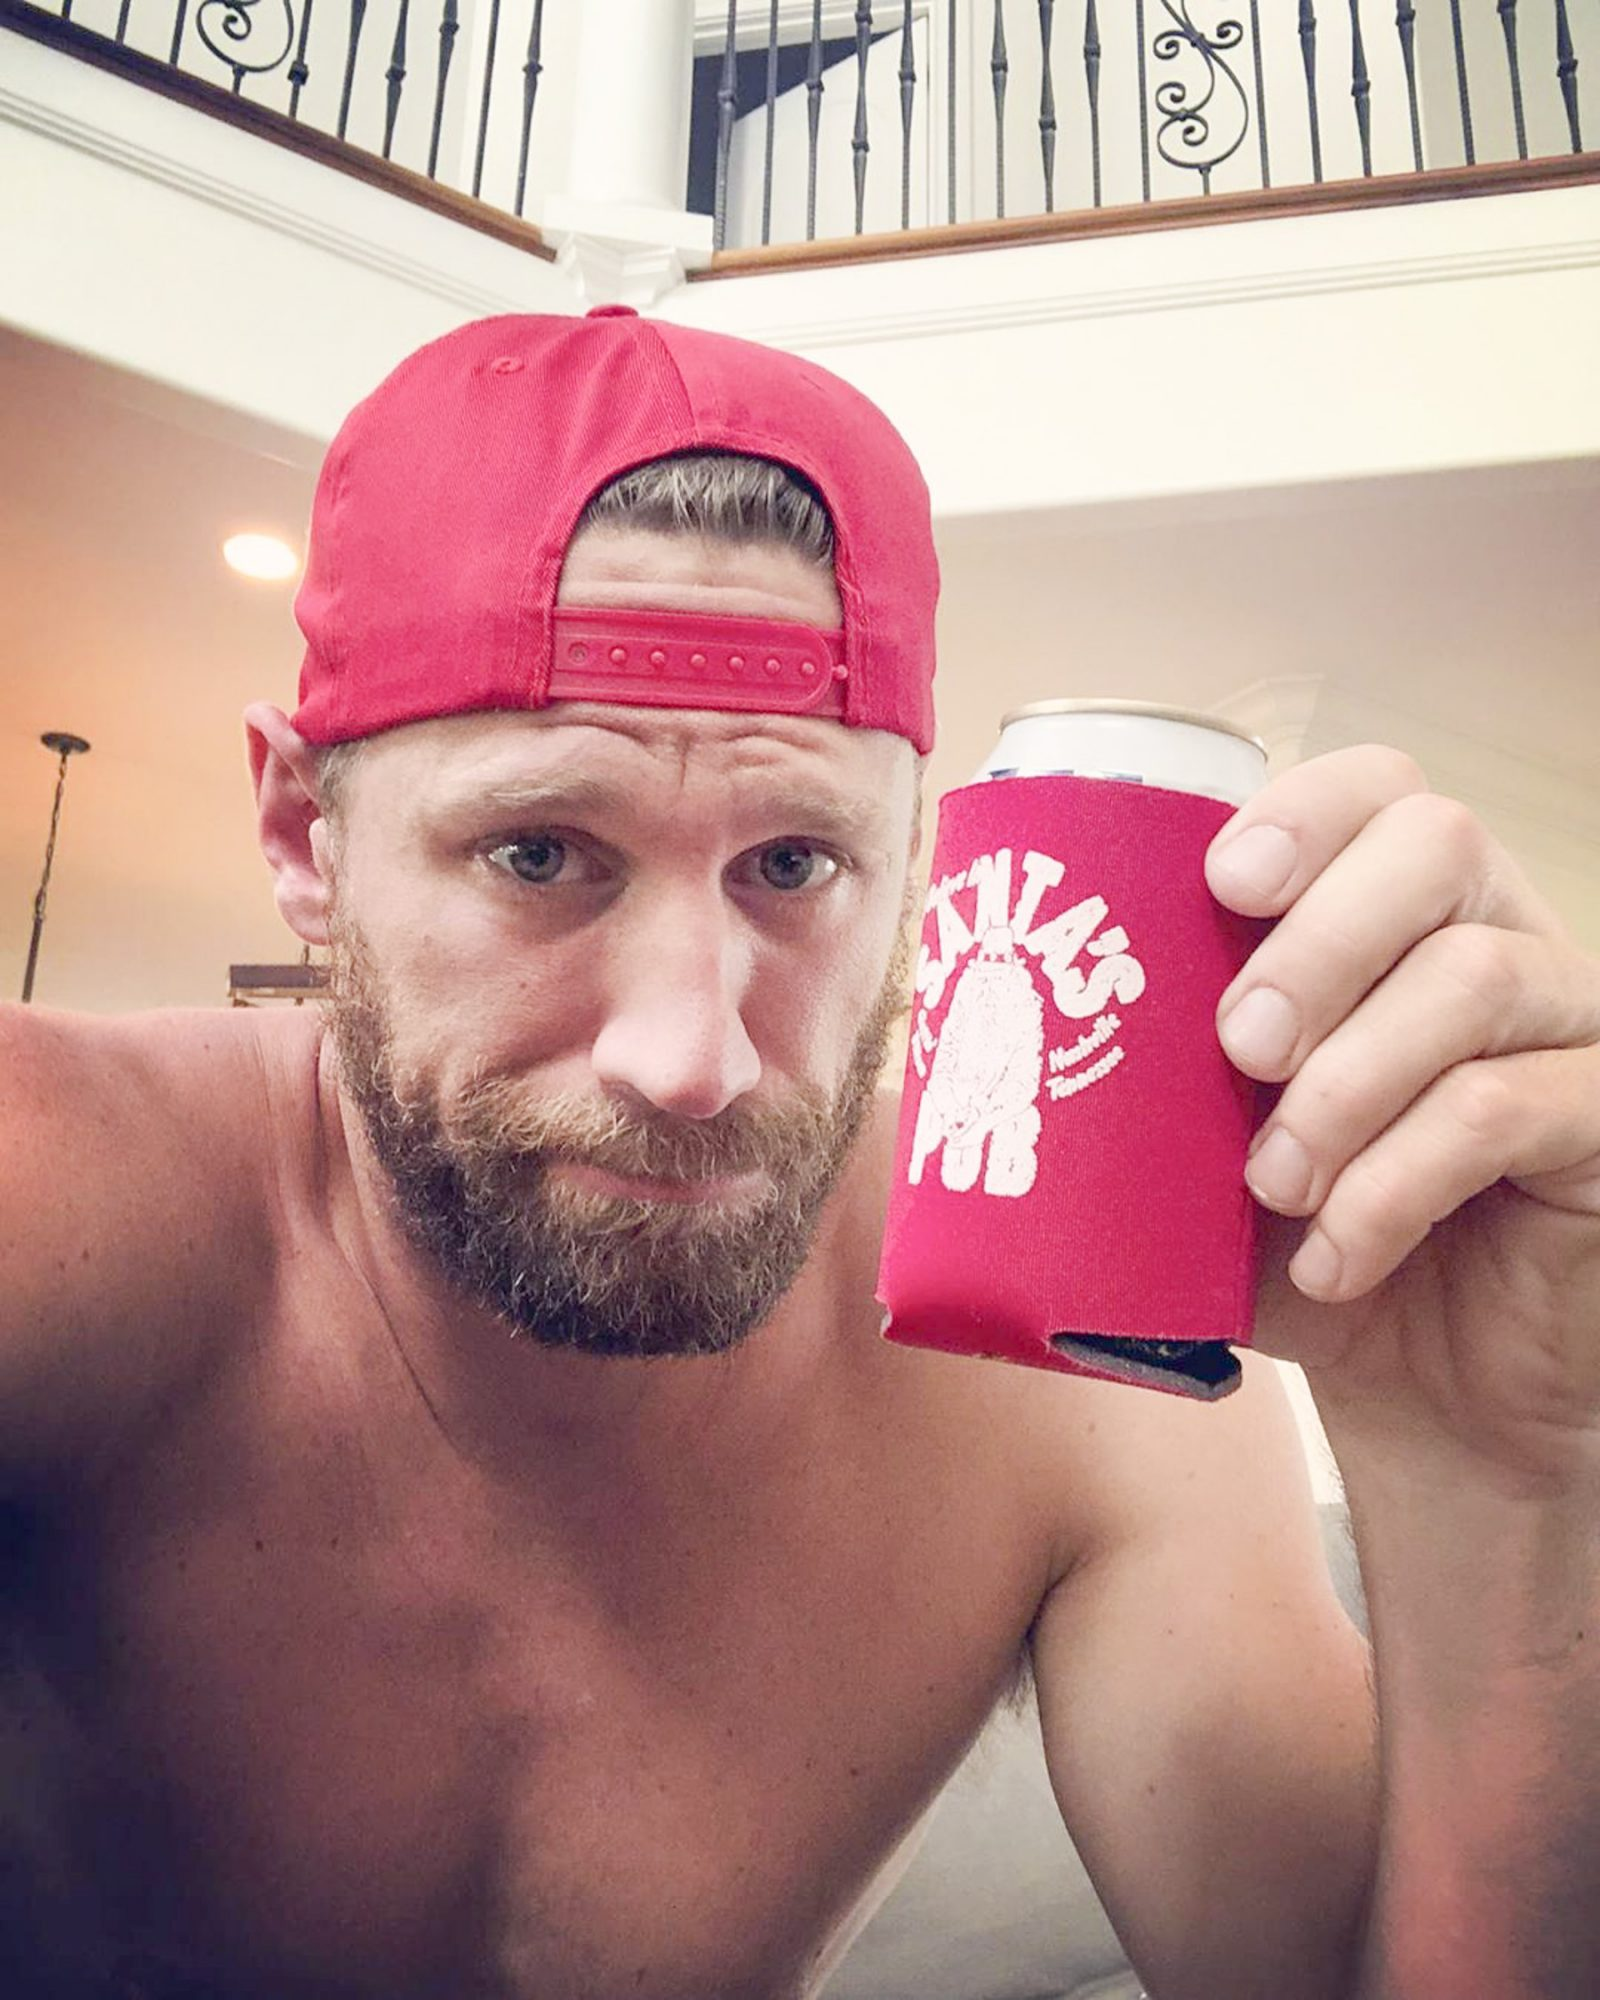 Chase Rice/Instagram